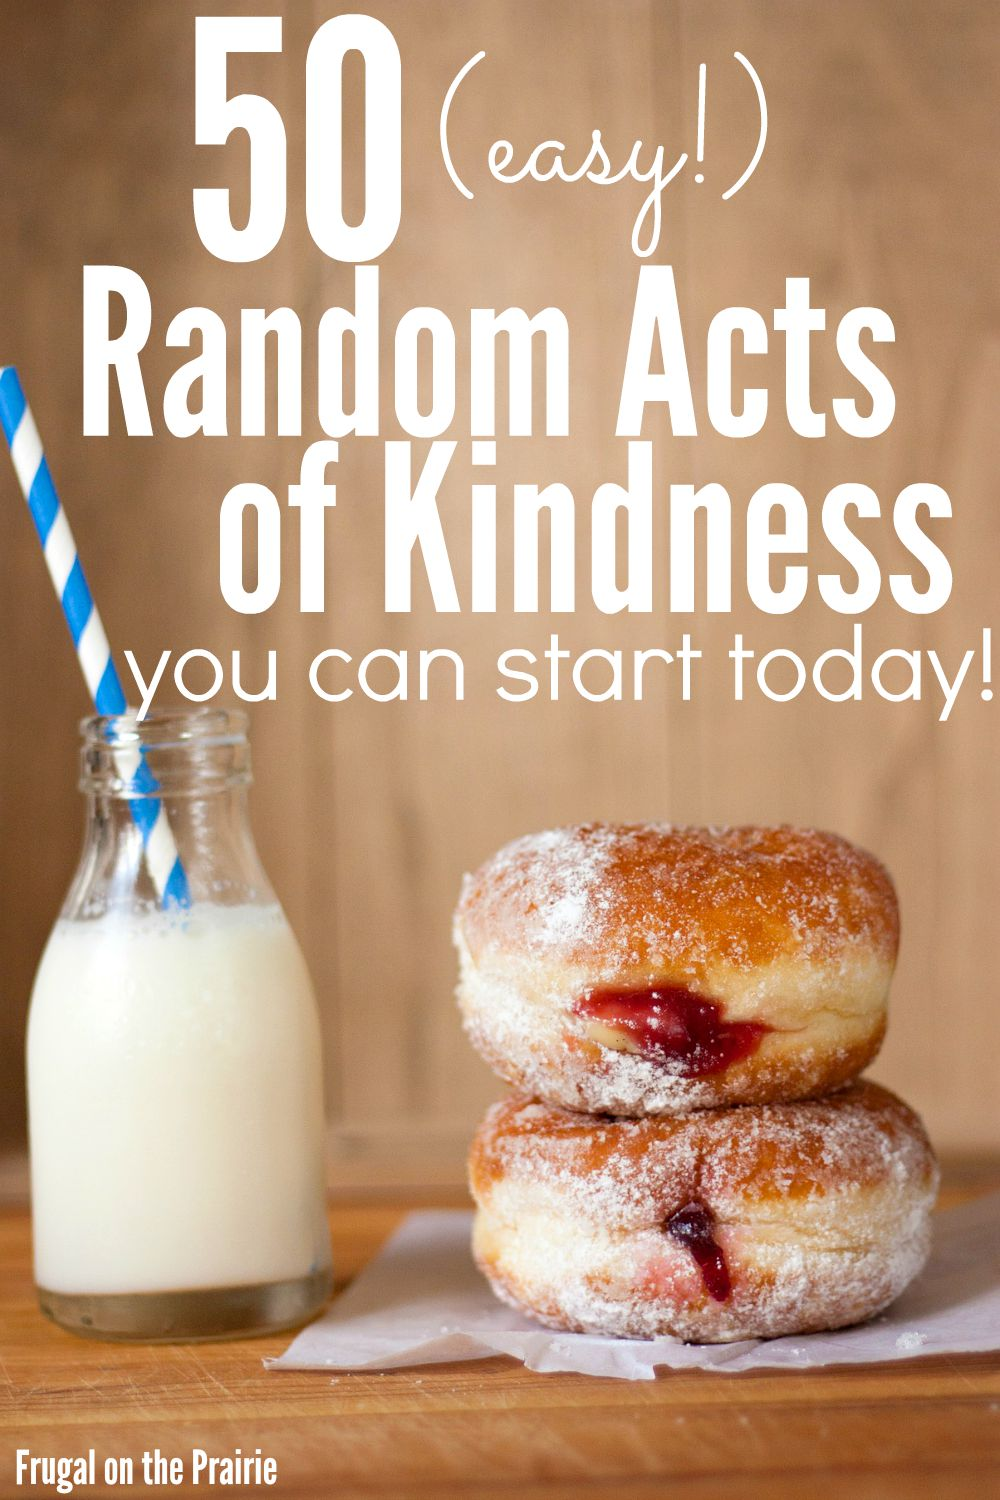 Want to be more giving and selfless of your time and energy? Here is a FREE checklist for 50 (easy!) random acts of kindness you can start today!